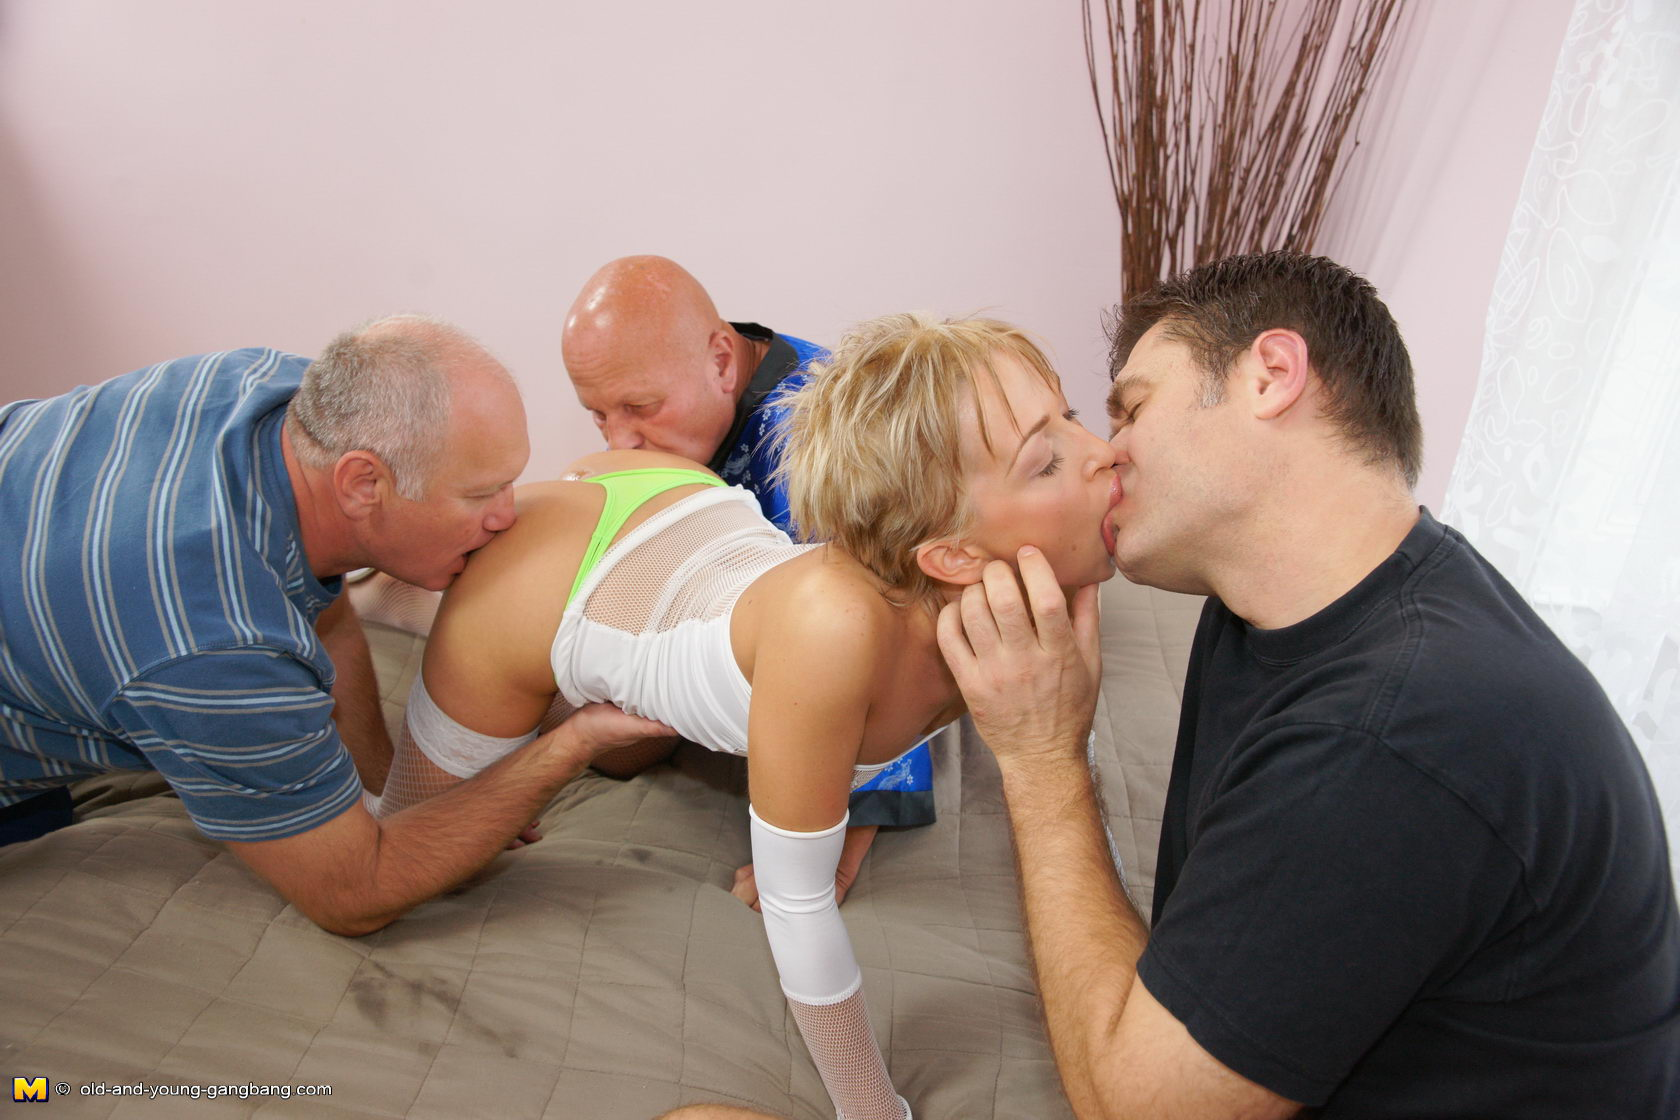 affiliates old and young gangbang galleries 2573 41105